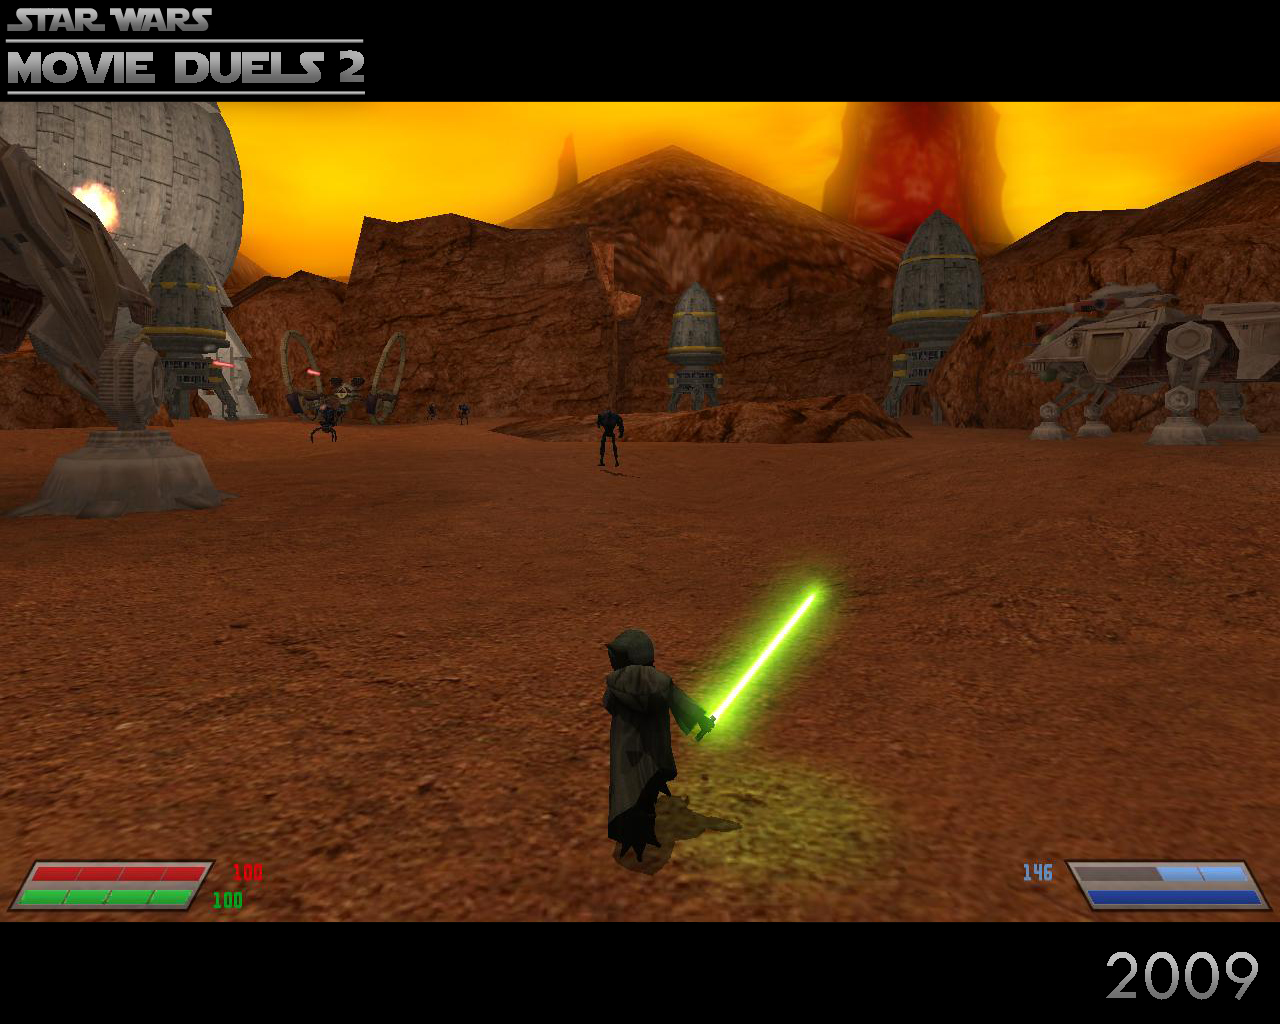 Battle Of Geonosis Attack Of The Clones Image Star Wars Movie